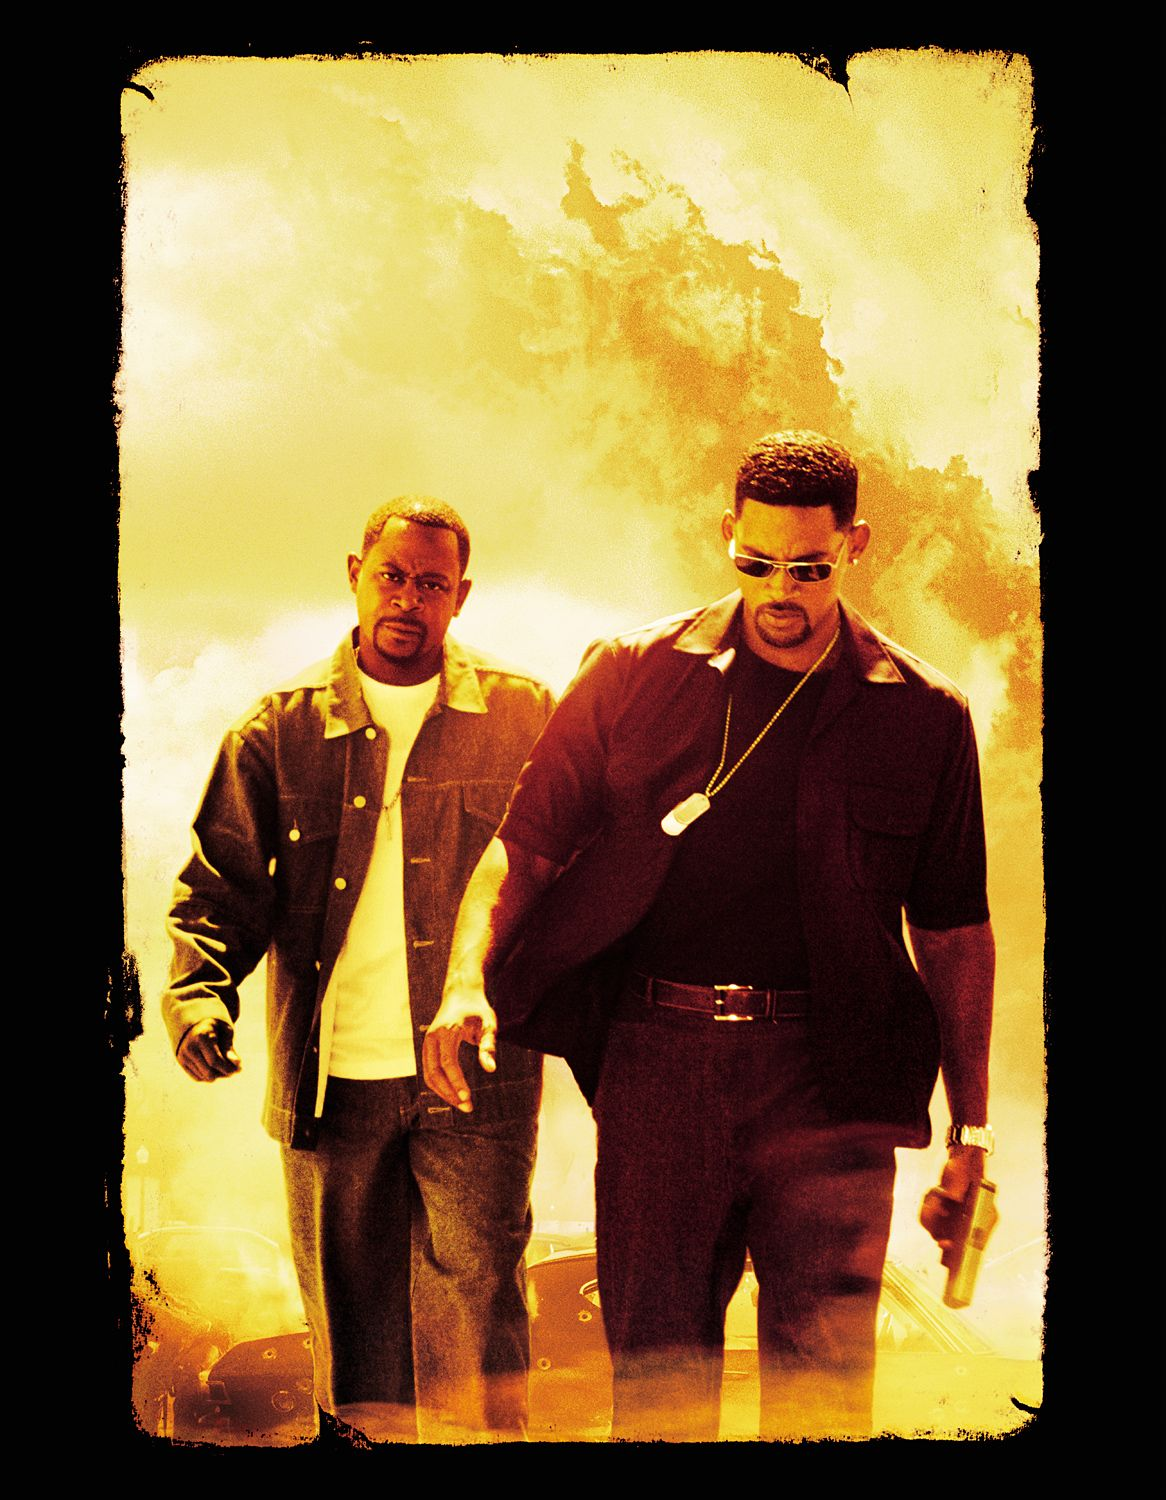 Sony sets dates for two 'Bad Boys' sequels, moves